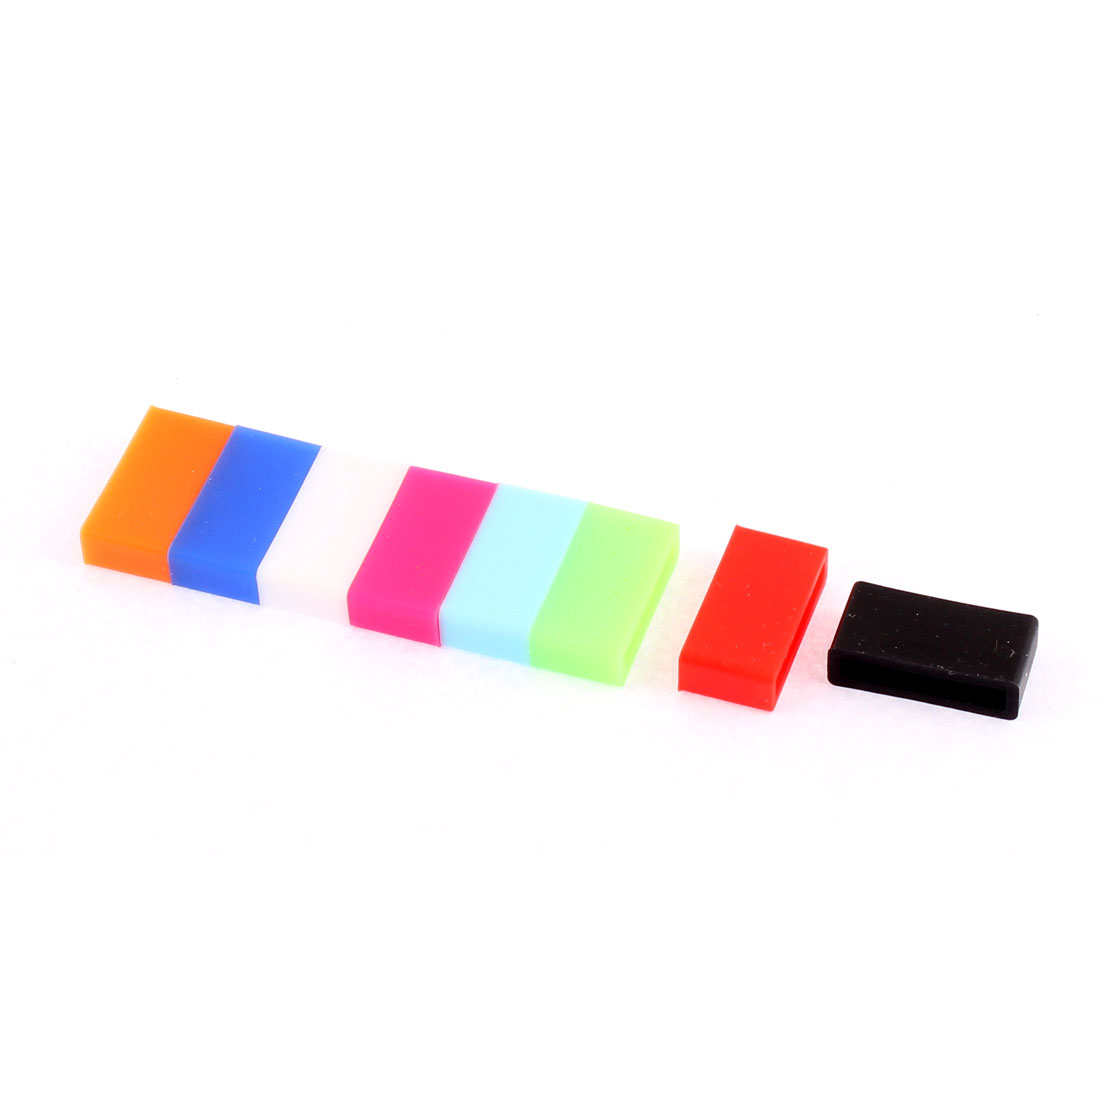 8pcs Antislip Silicone Retaining Band Watch Buckle Ring Hoop Loop Holder for 20mm Width Strap